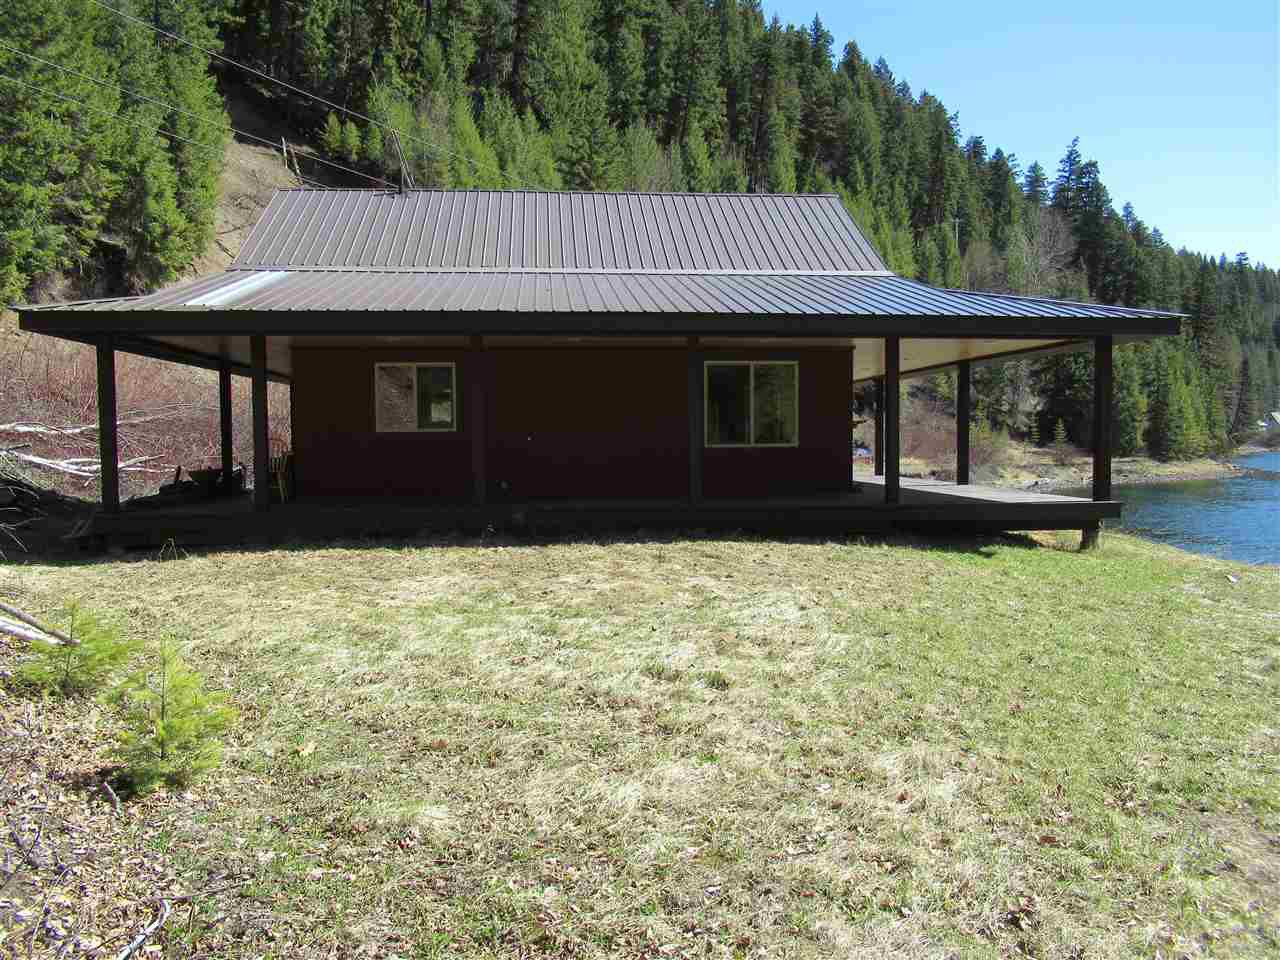 Photo 13: Photos: 6278 KNIGHT Road: Likely House for sale (Williams Lake (Zone 27))  : MLS®# R2361221